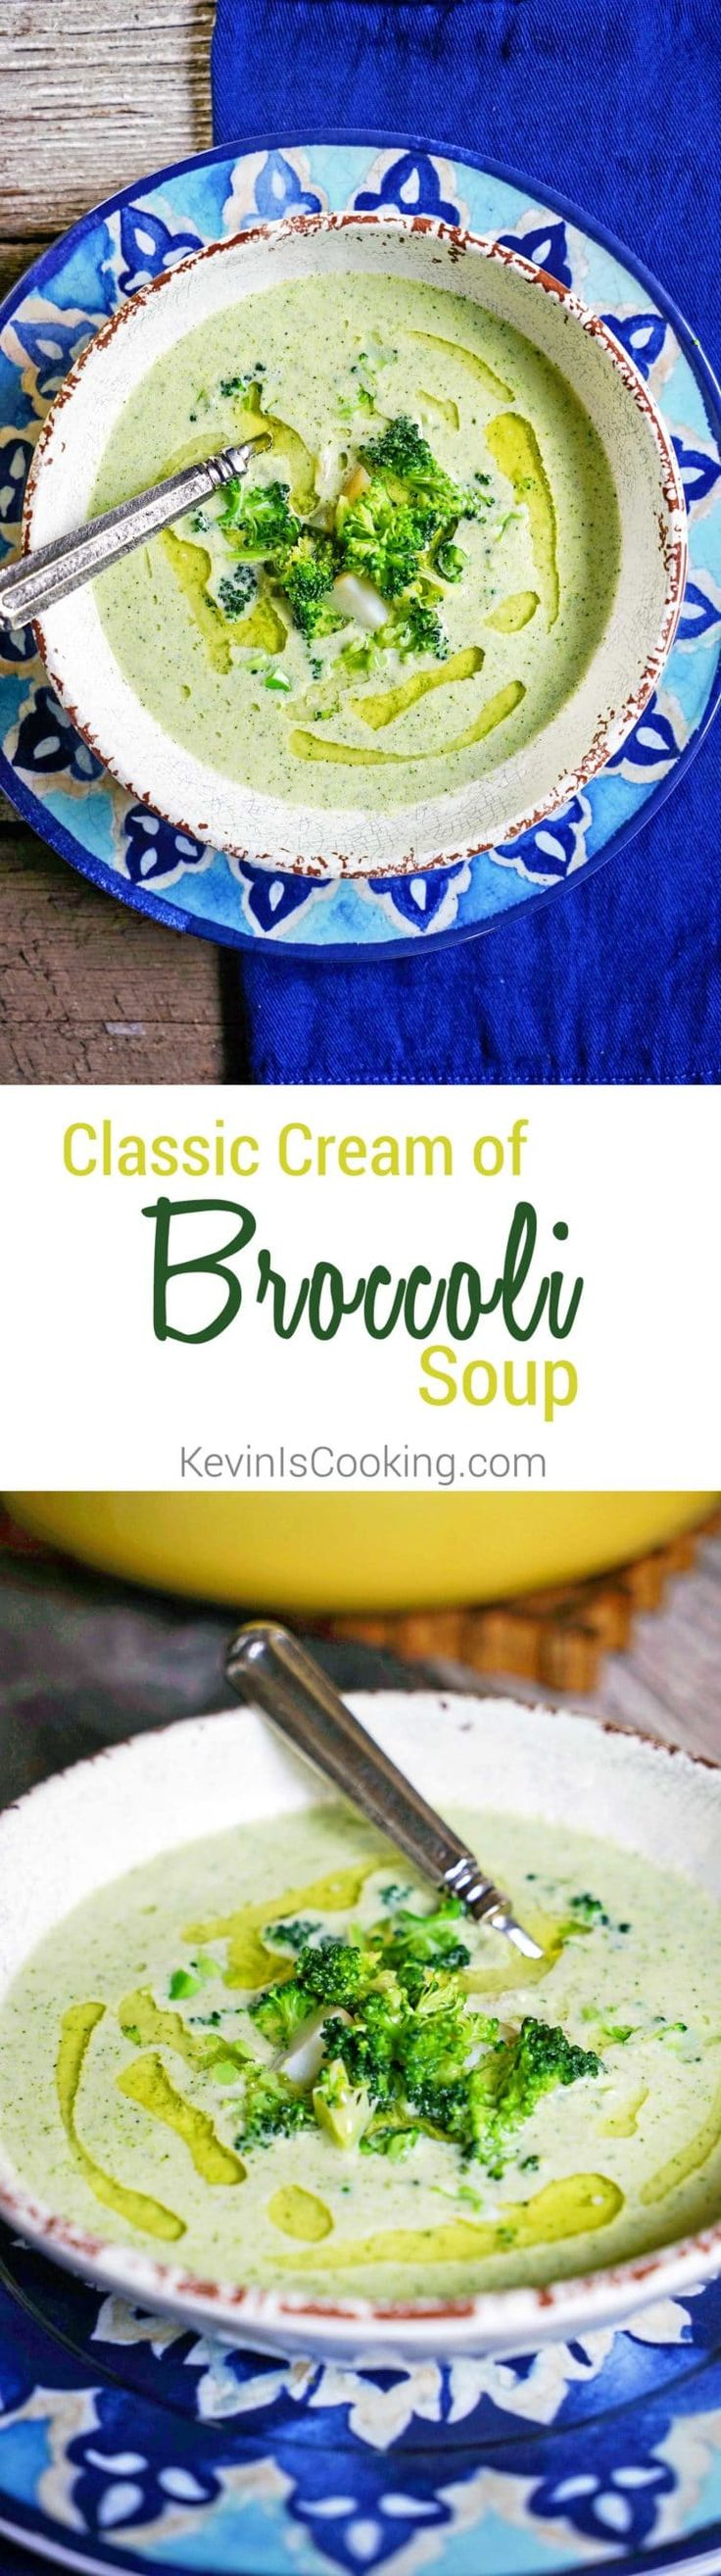 Classic Cream of Broccoli Soup. www.keviniscooking.com